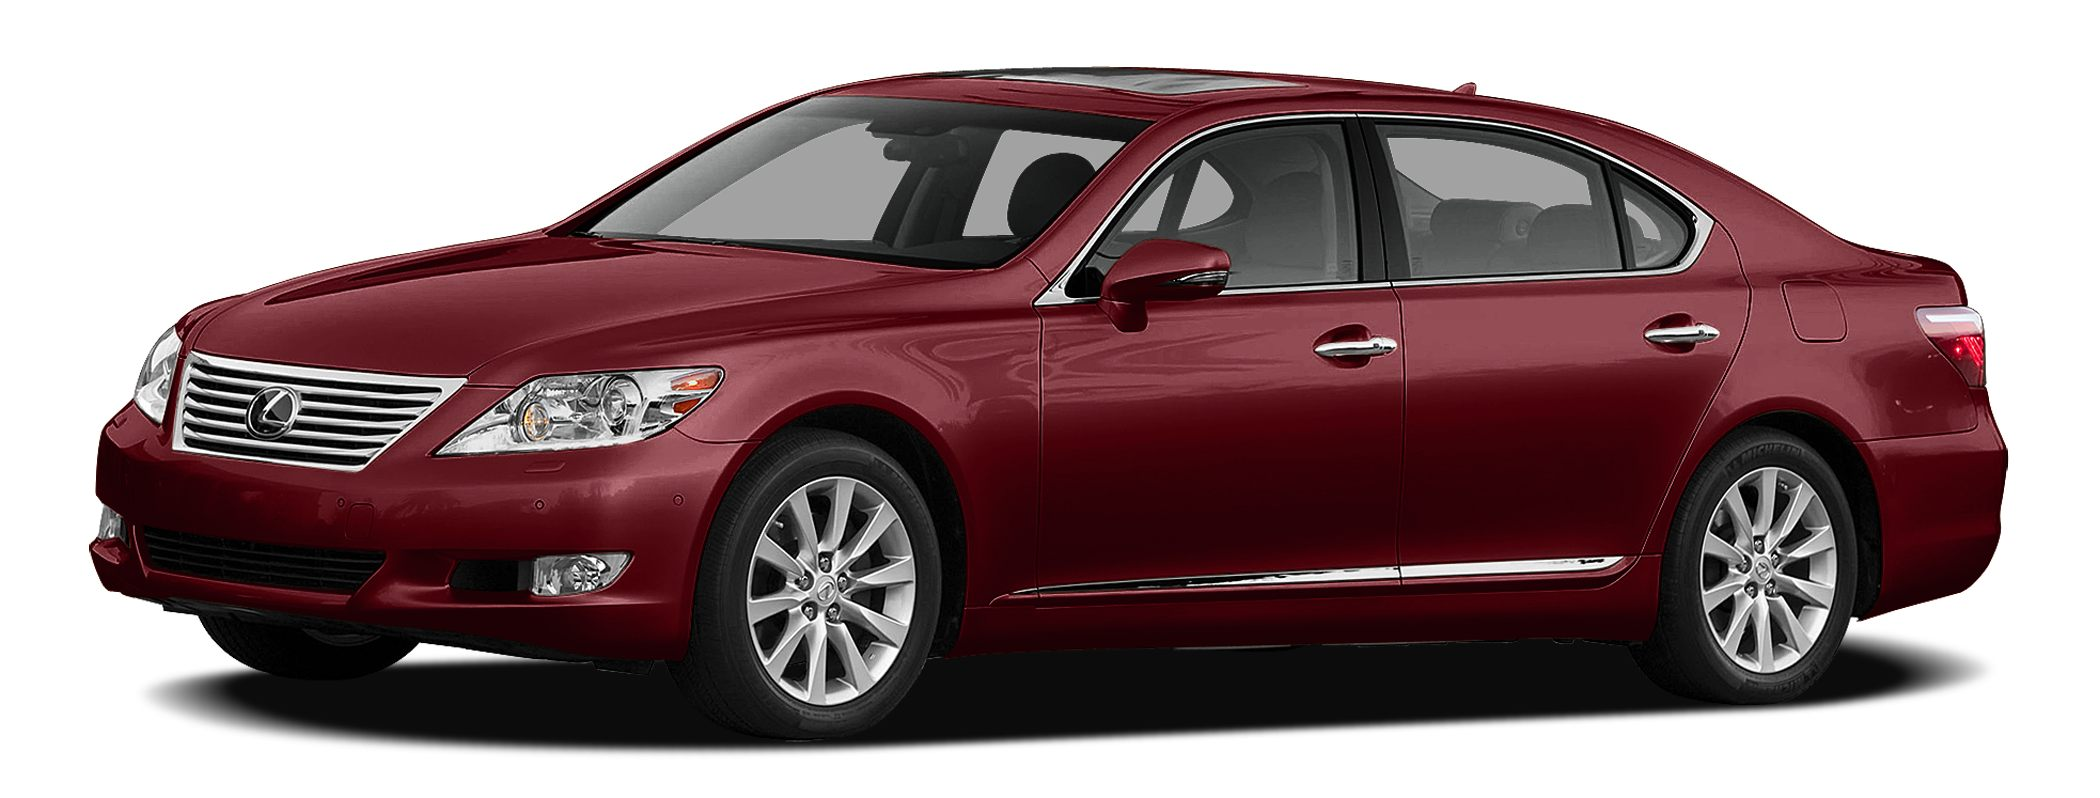 2012 Lexus LS 460 Base Proudly serving manatee county for over 60 years offering Cars Trucks SUV